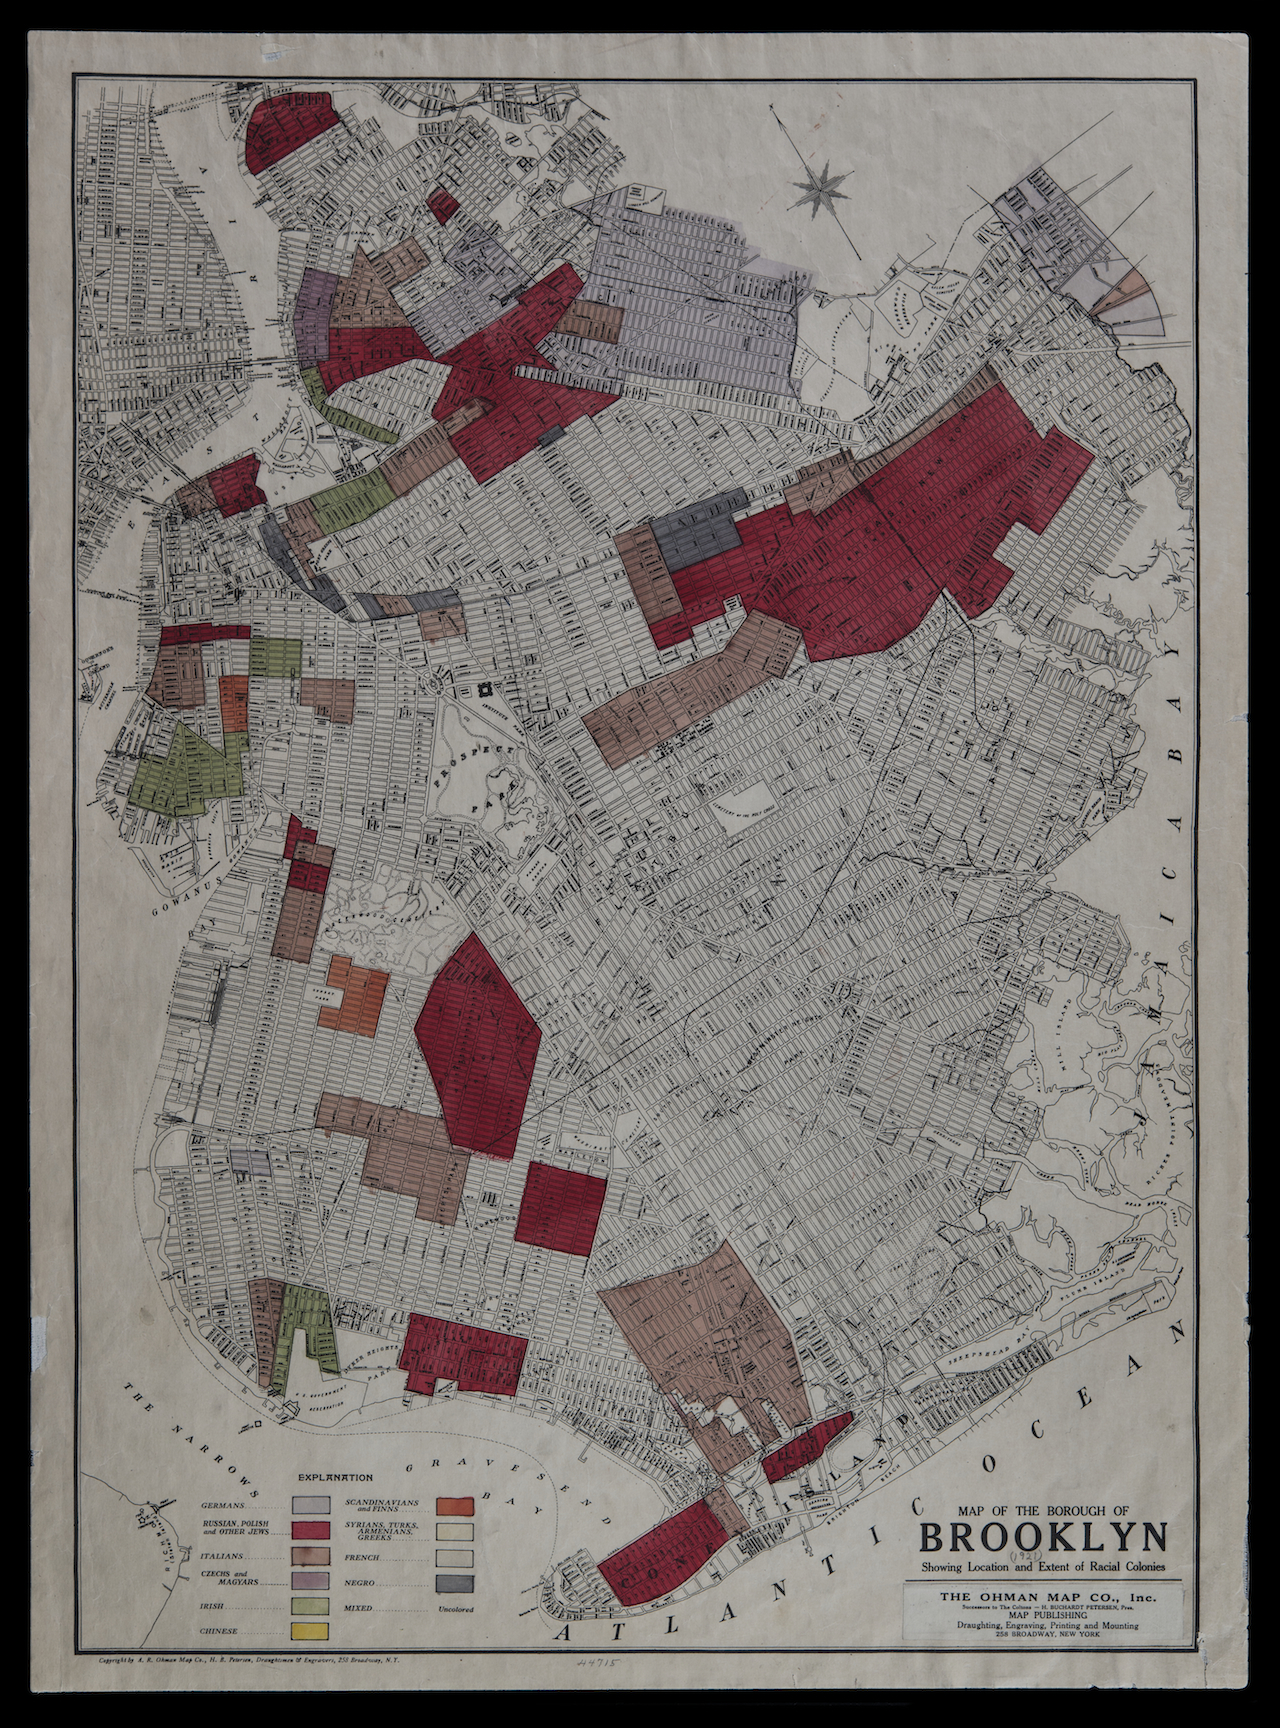 Paired with Kozloff: Map of the Borough of Brooklyn: Showing Location and Extent of Racial Colonies, Ohman Map Co., 1920; Flat Maps B B-[1920].fl; Brooklyn Historical Society.